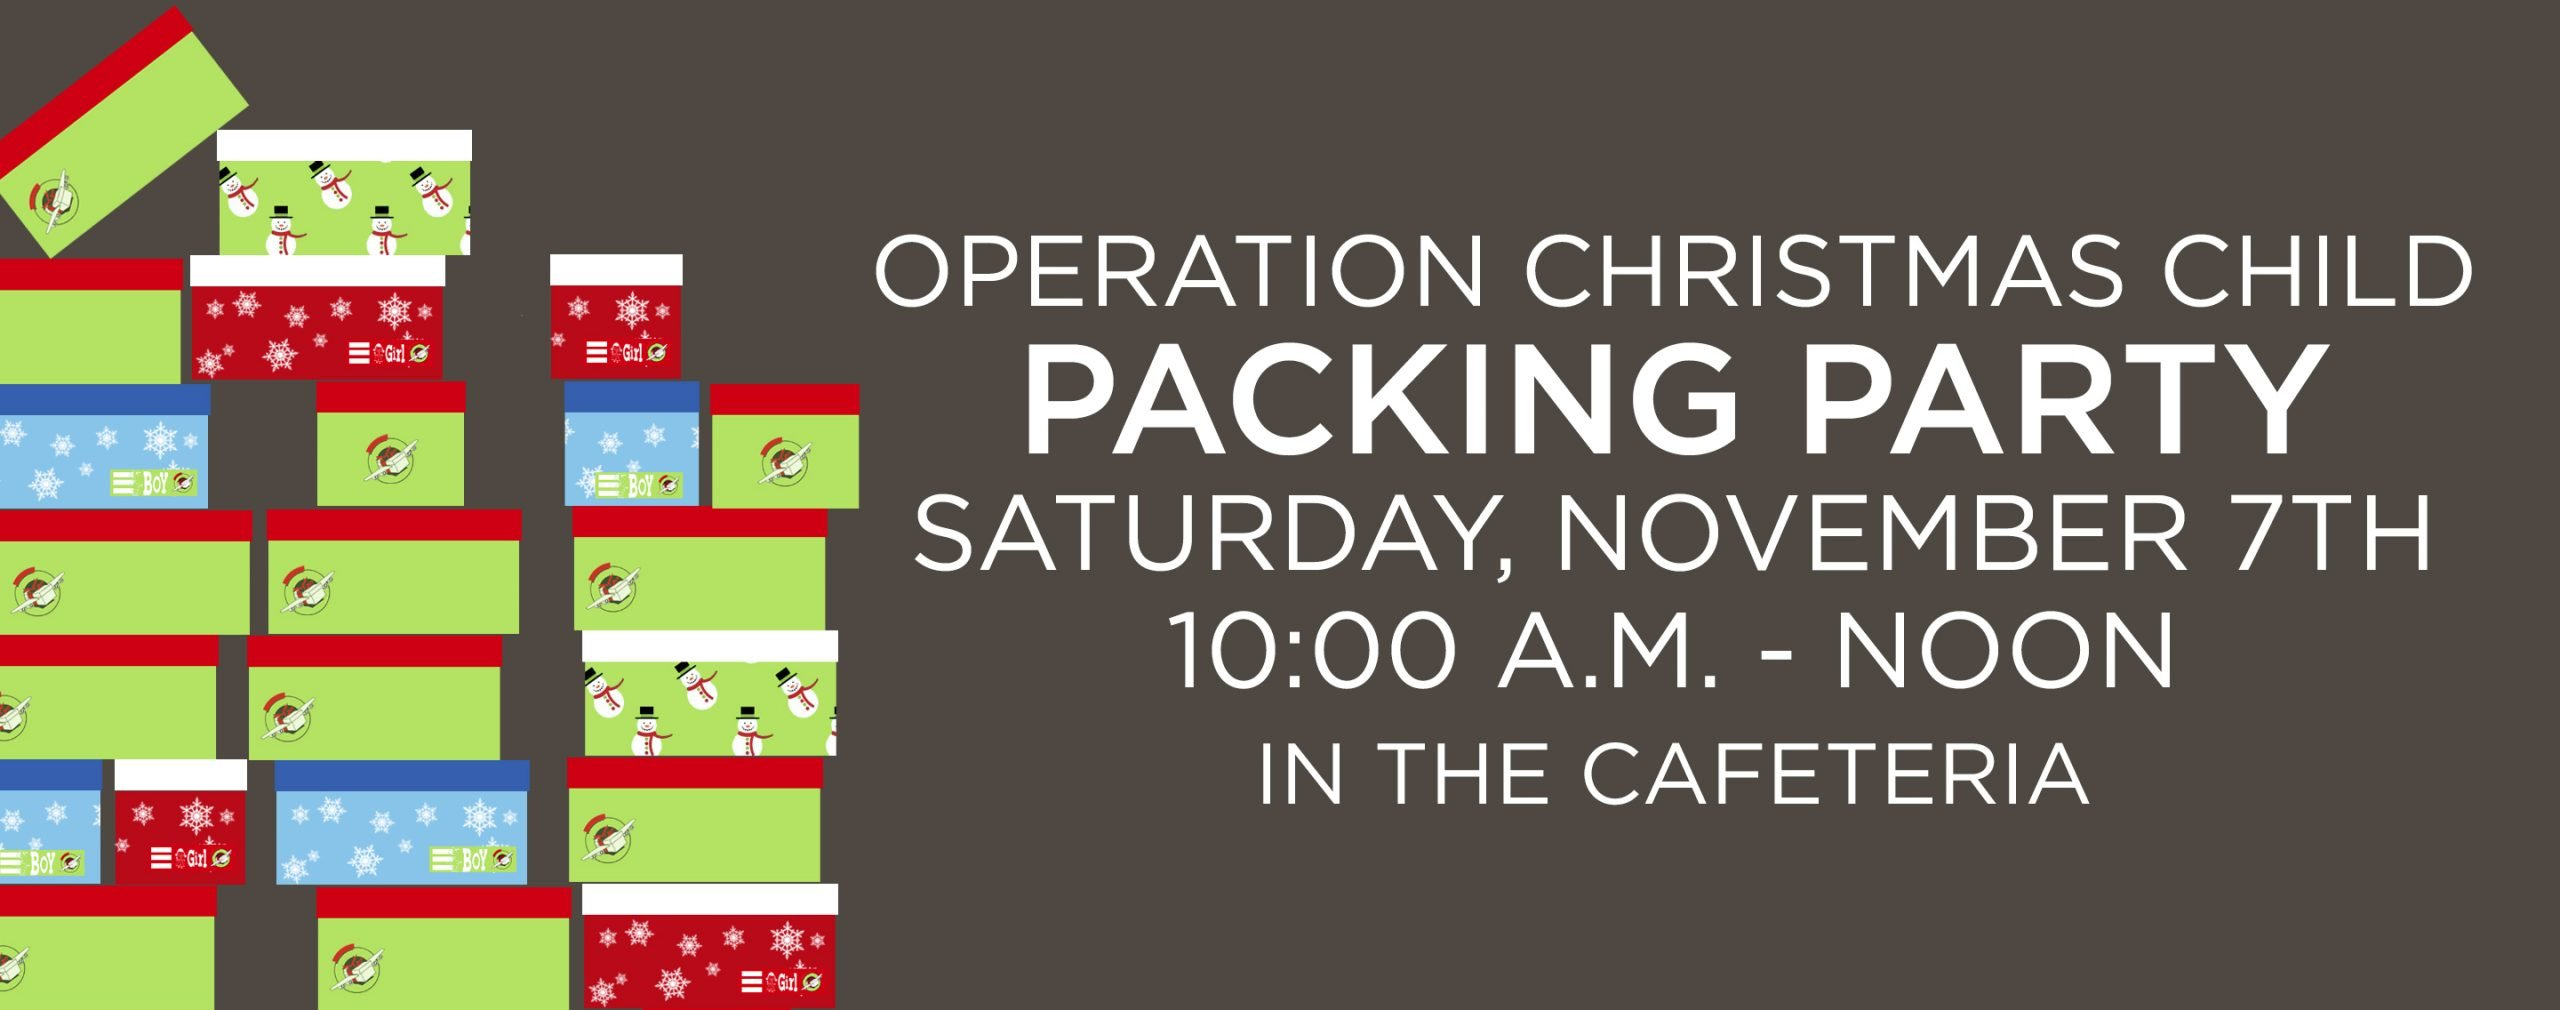 Occ Packing Party 2020 Web